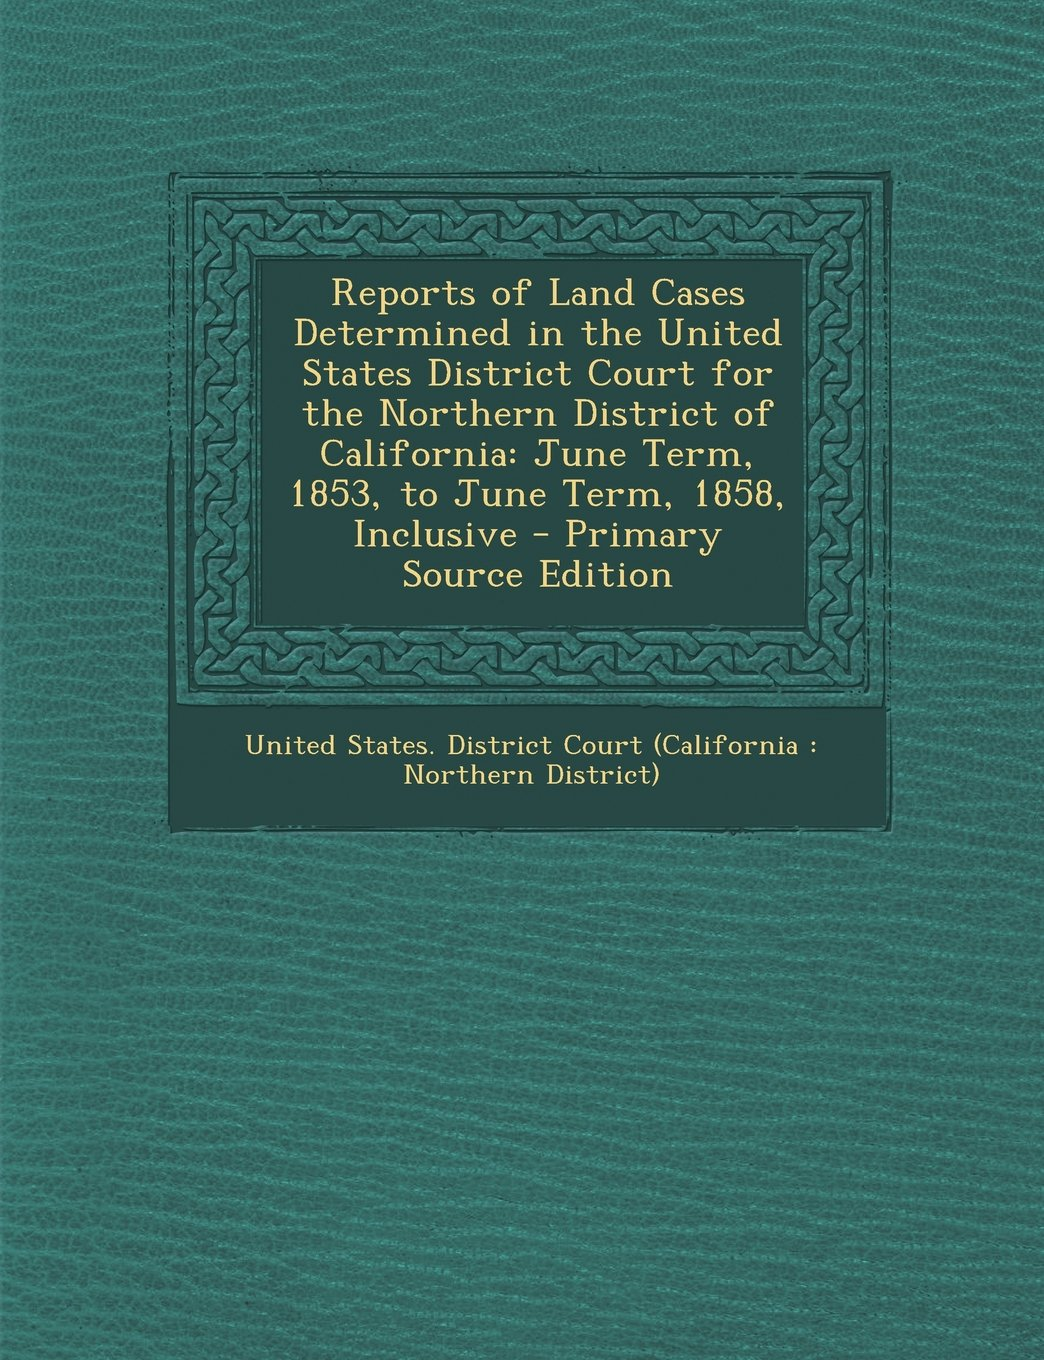 Reports of Land Cases Determined in the United States District Court for the Northern District of California: June Term, 1853, to June Term, 1858, Inc pdf